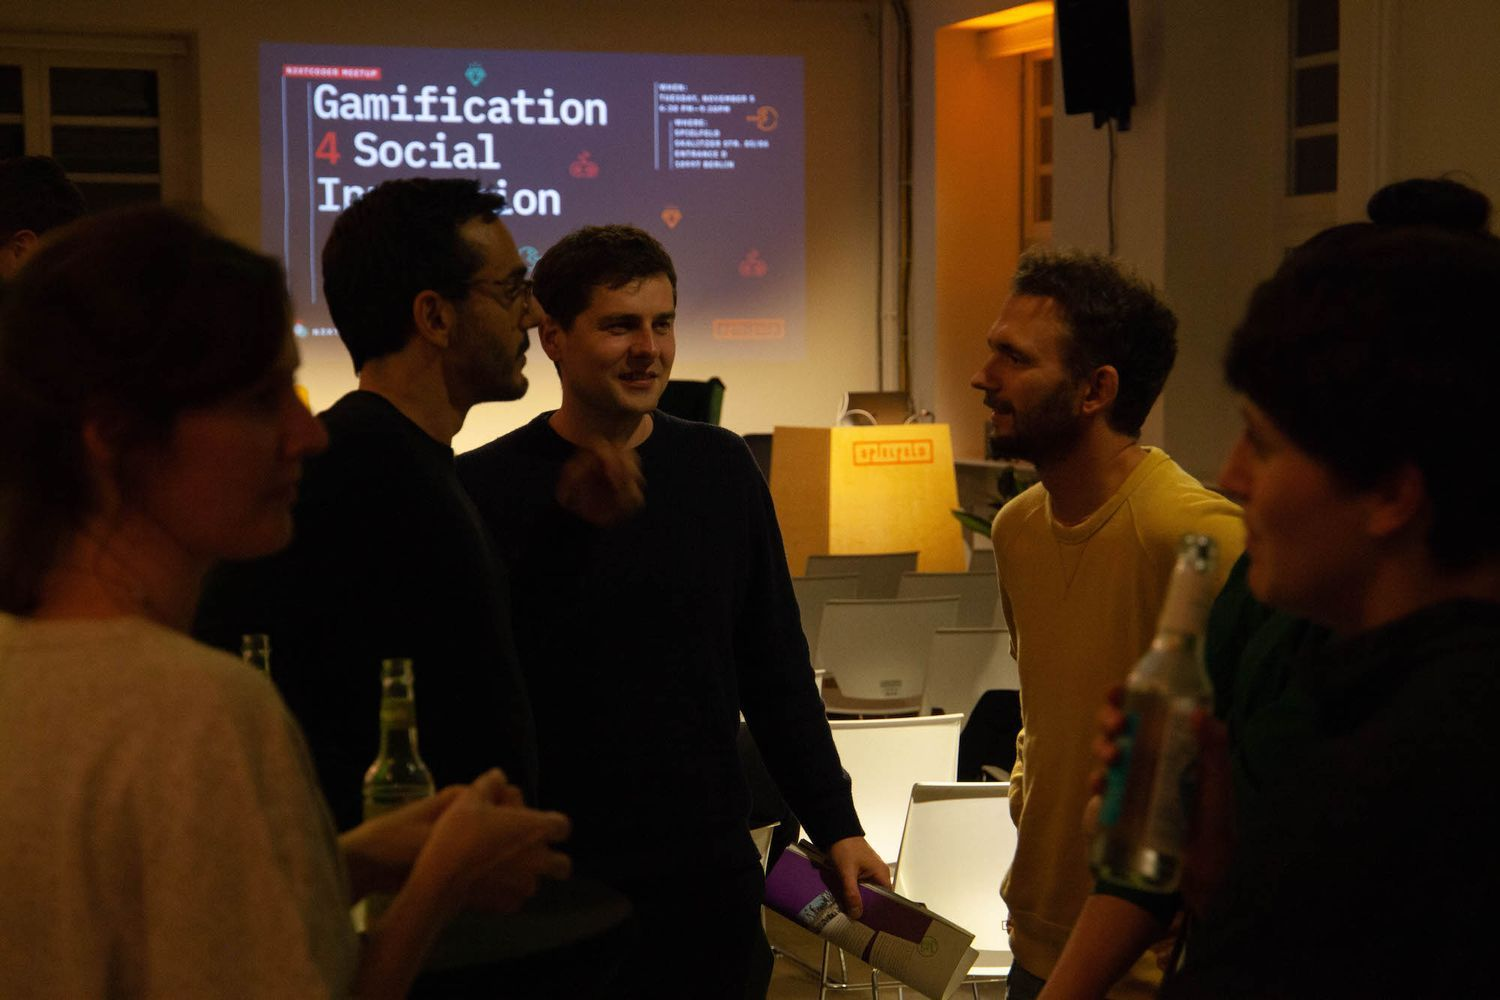 Discussions before the Gamification 4 Social Innovation meetup by N3XTCODER